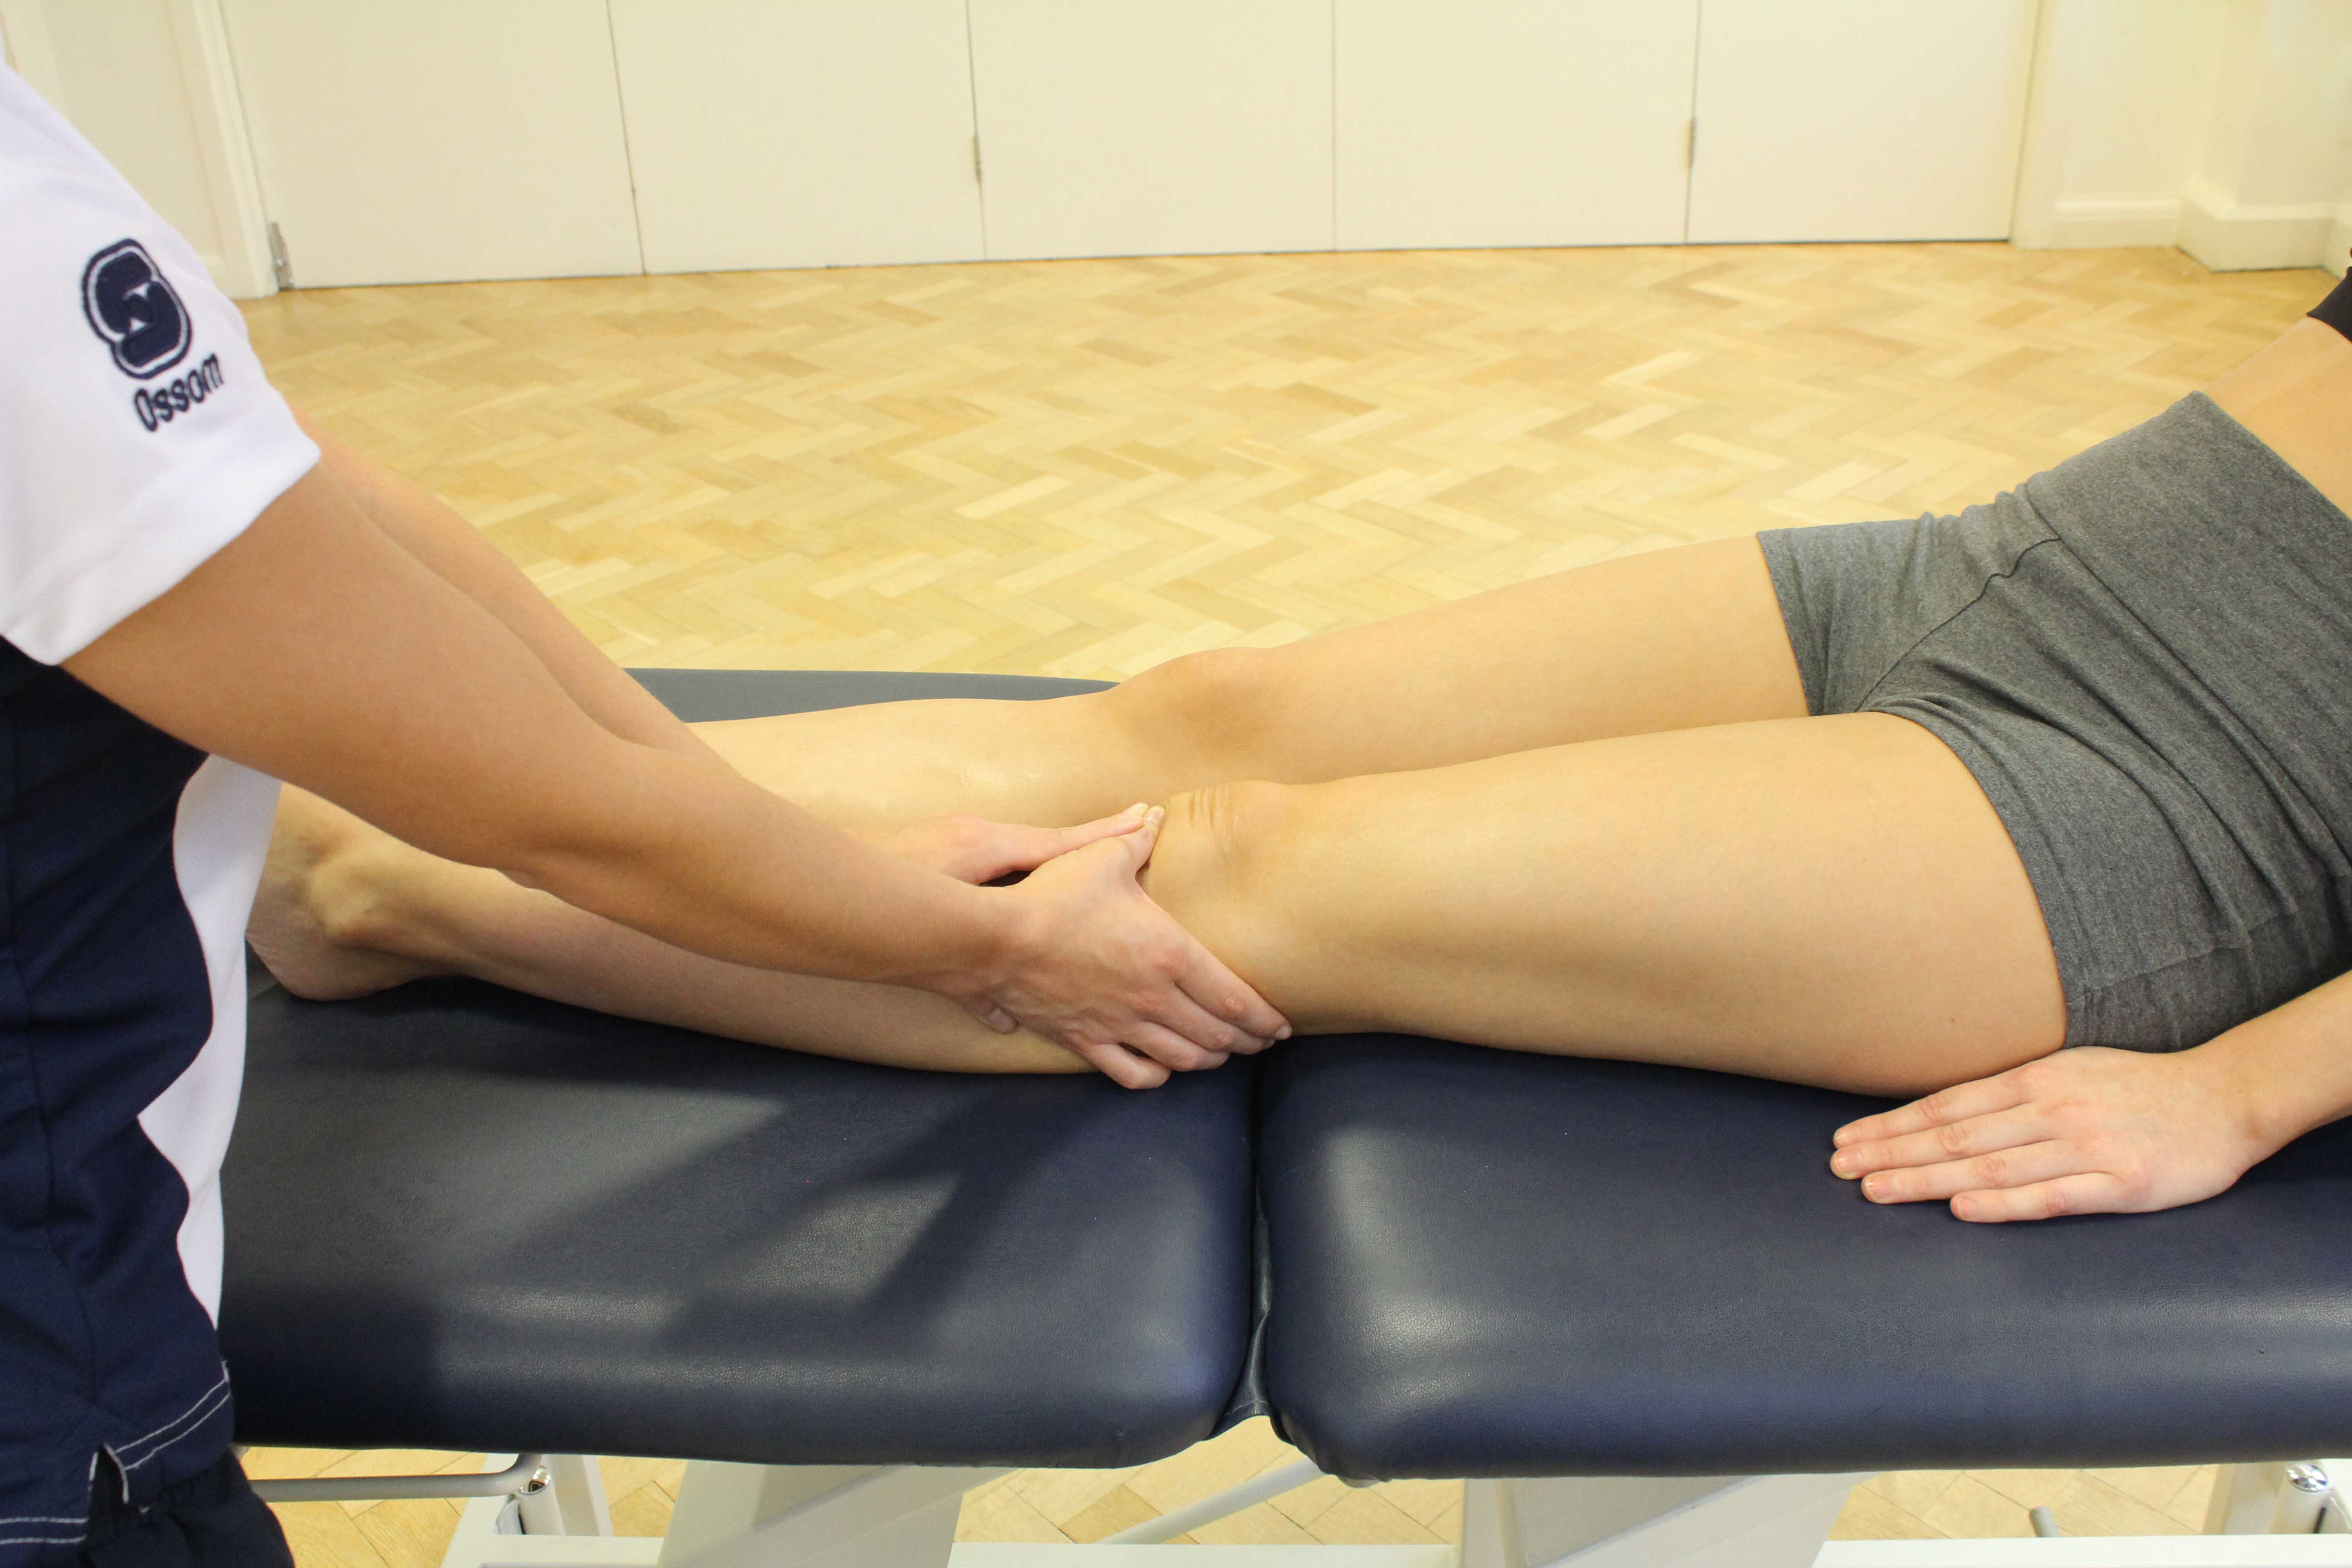 Mobilisations of the patella by experienced MSK therapist